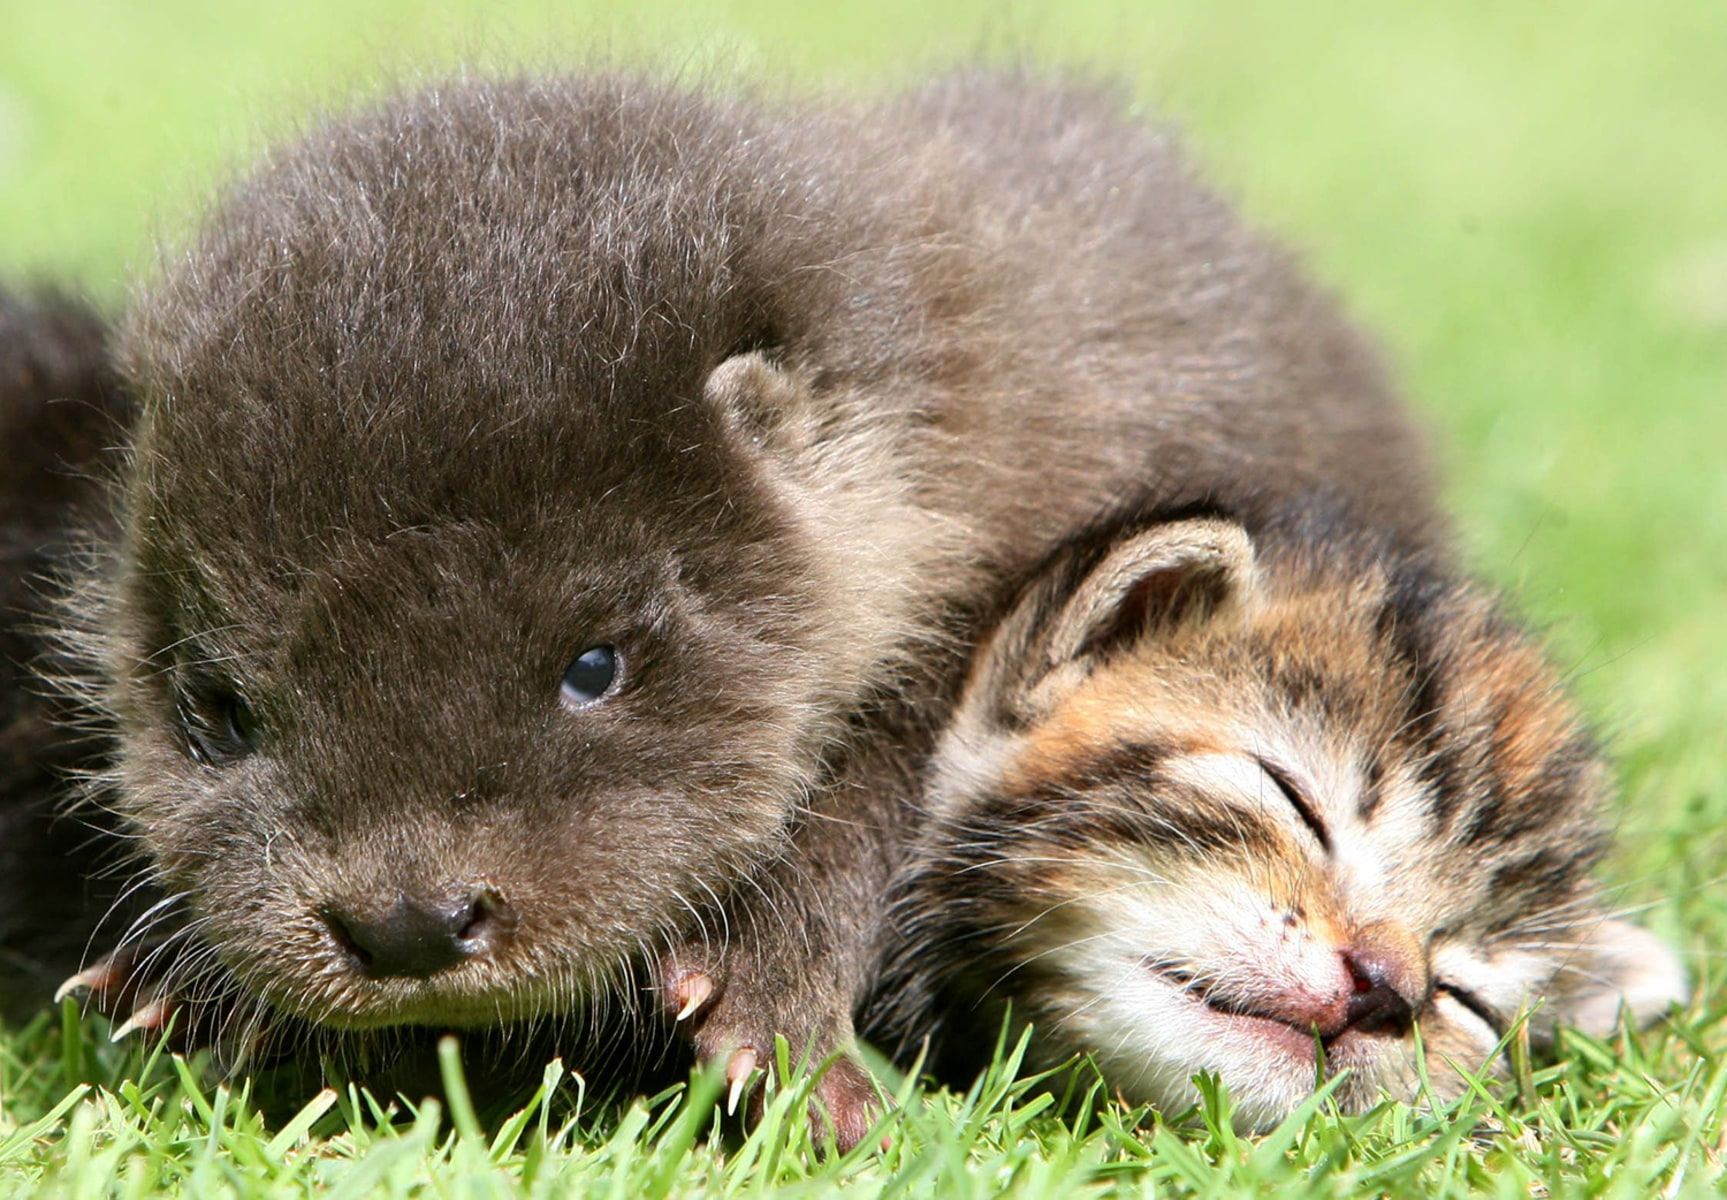 Orphaned otter becomes friends with orphaned kittens at the Secret World Rescue in Somerset, Britain - 07 Aug 2011